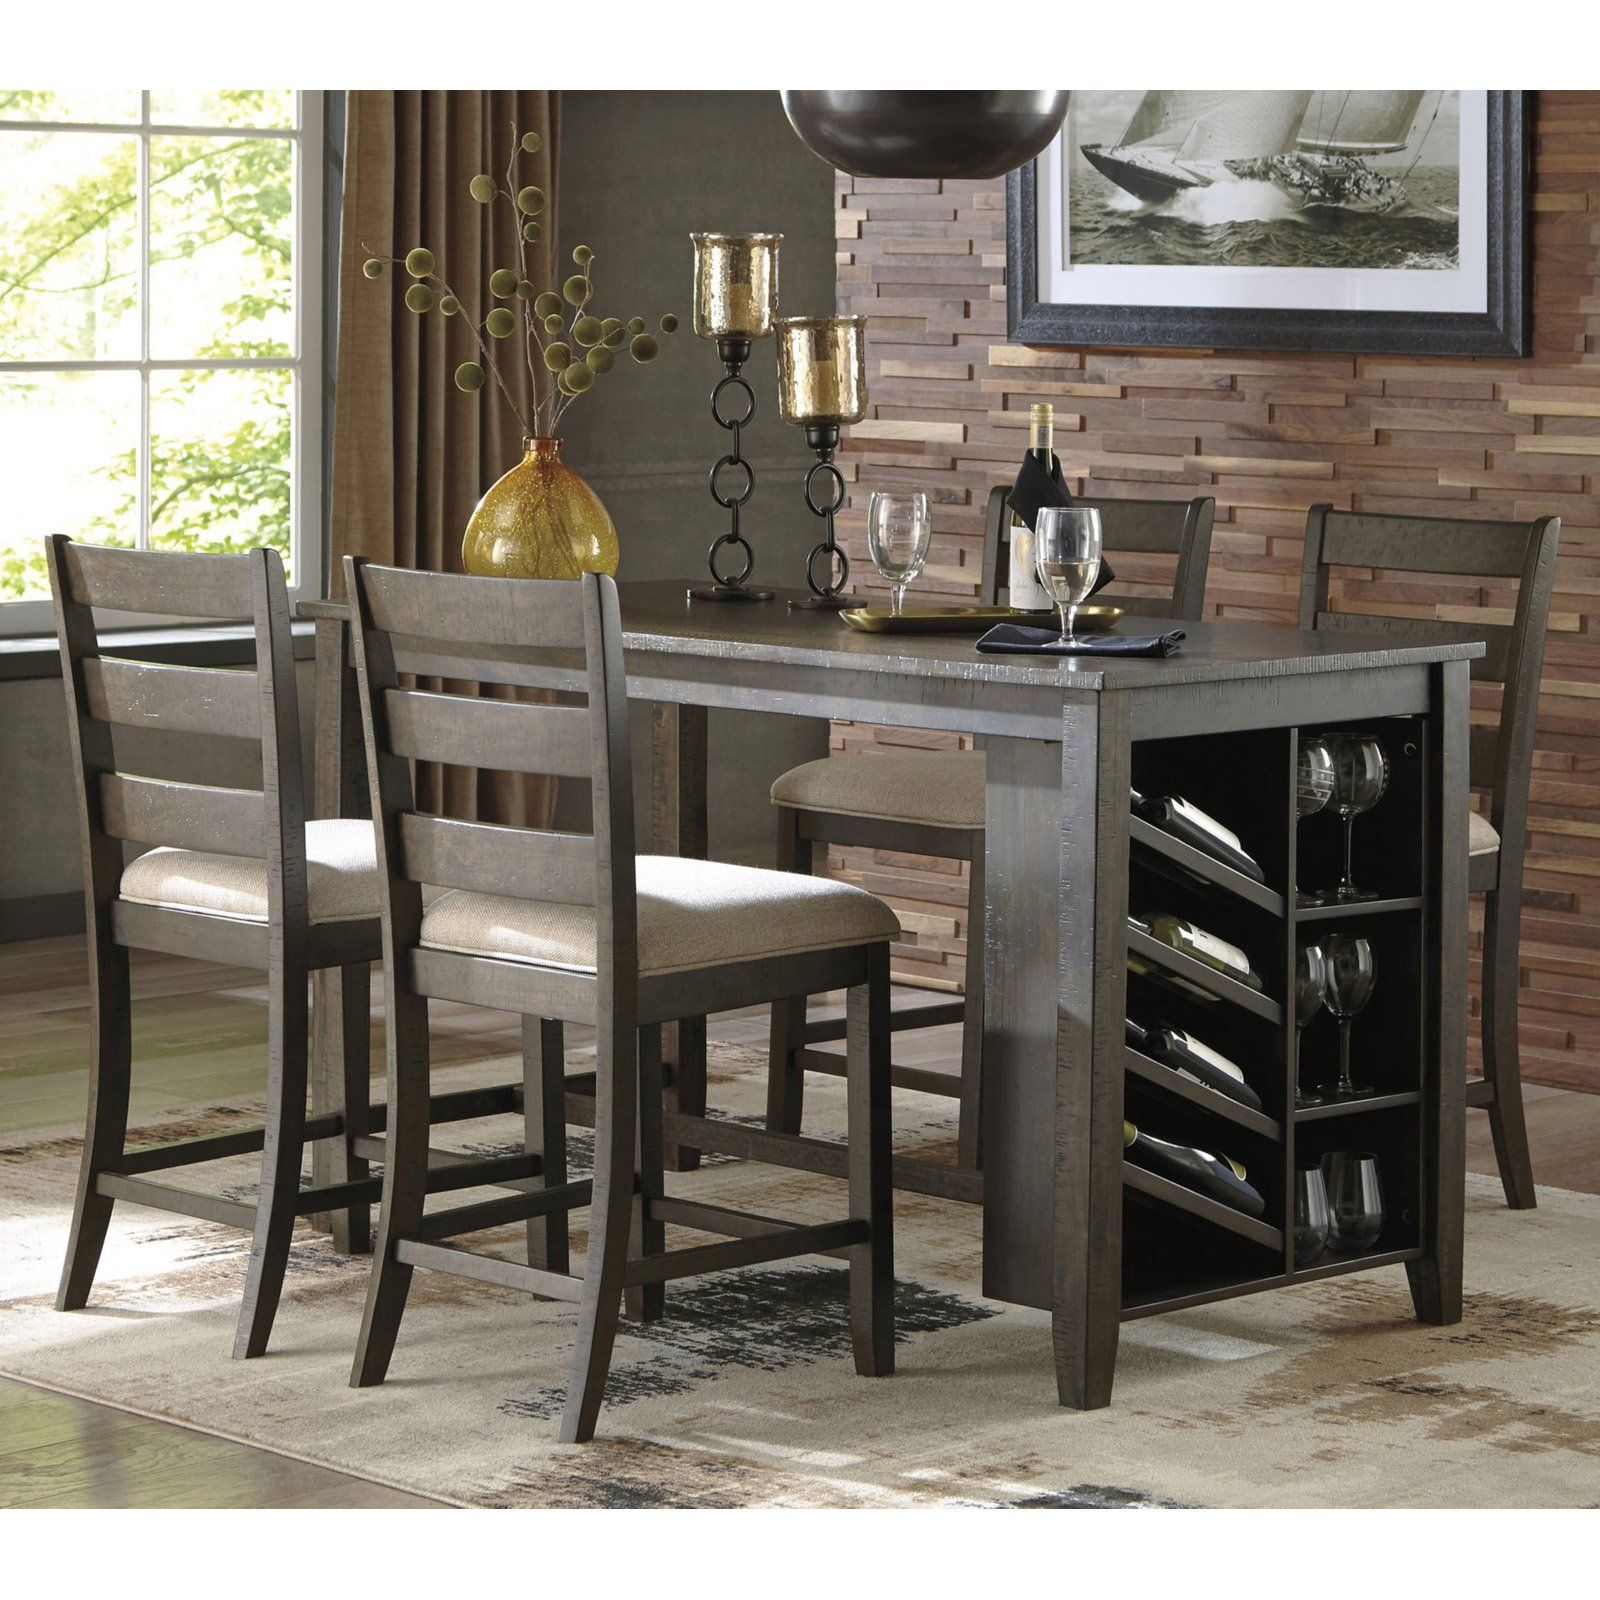 Signature Design By Ashley Rokane 5 Piece Counter Height Dining